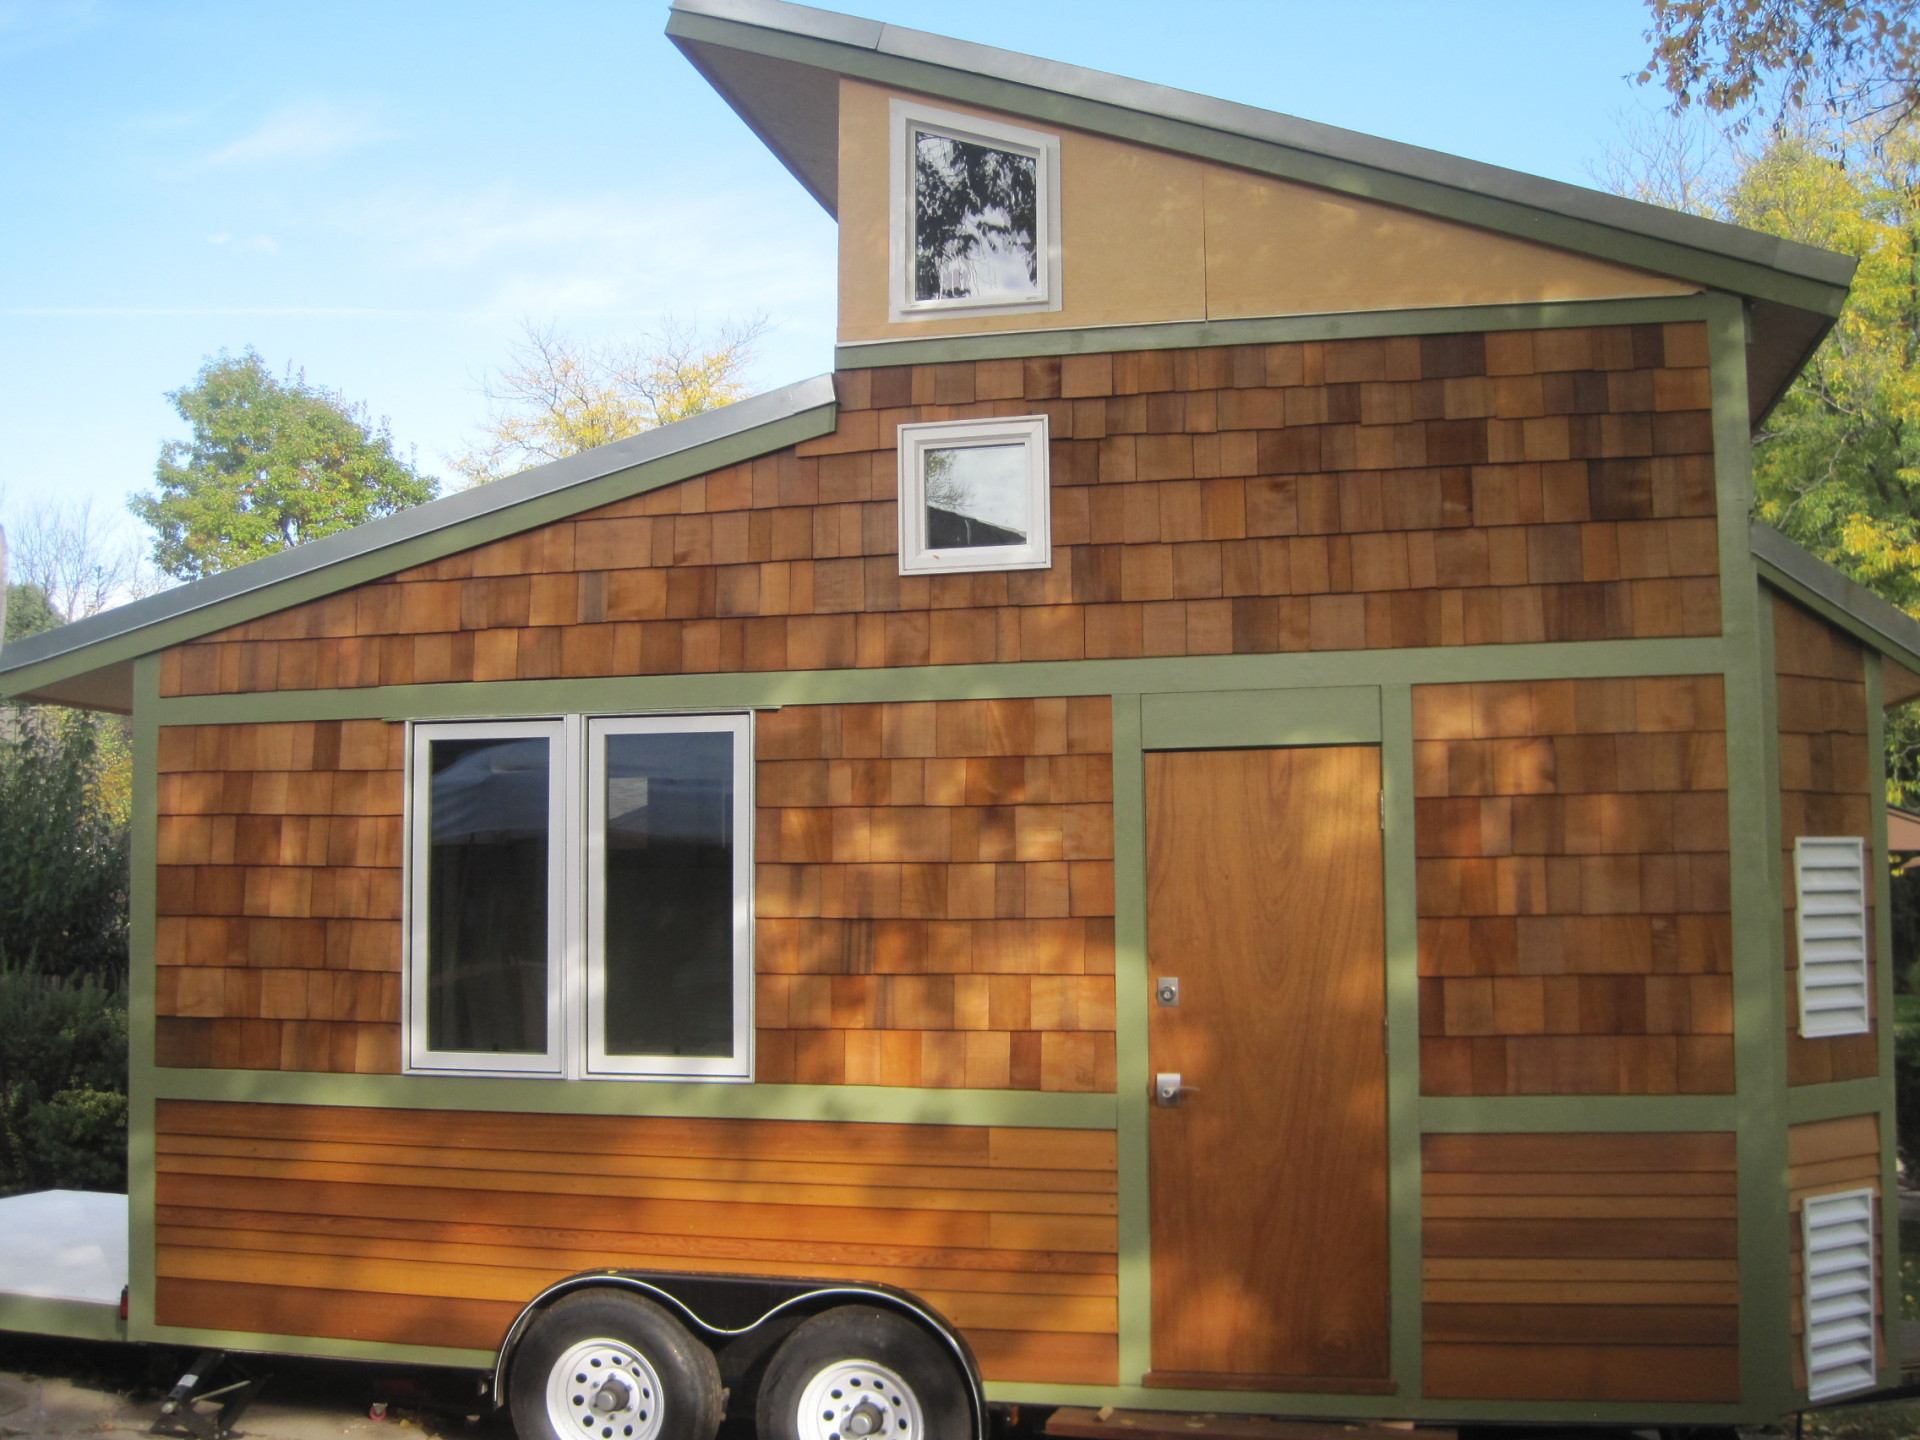 Image of the tiny house know as the Band Wagon. View of the Side Door an Windows